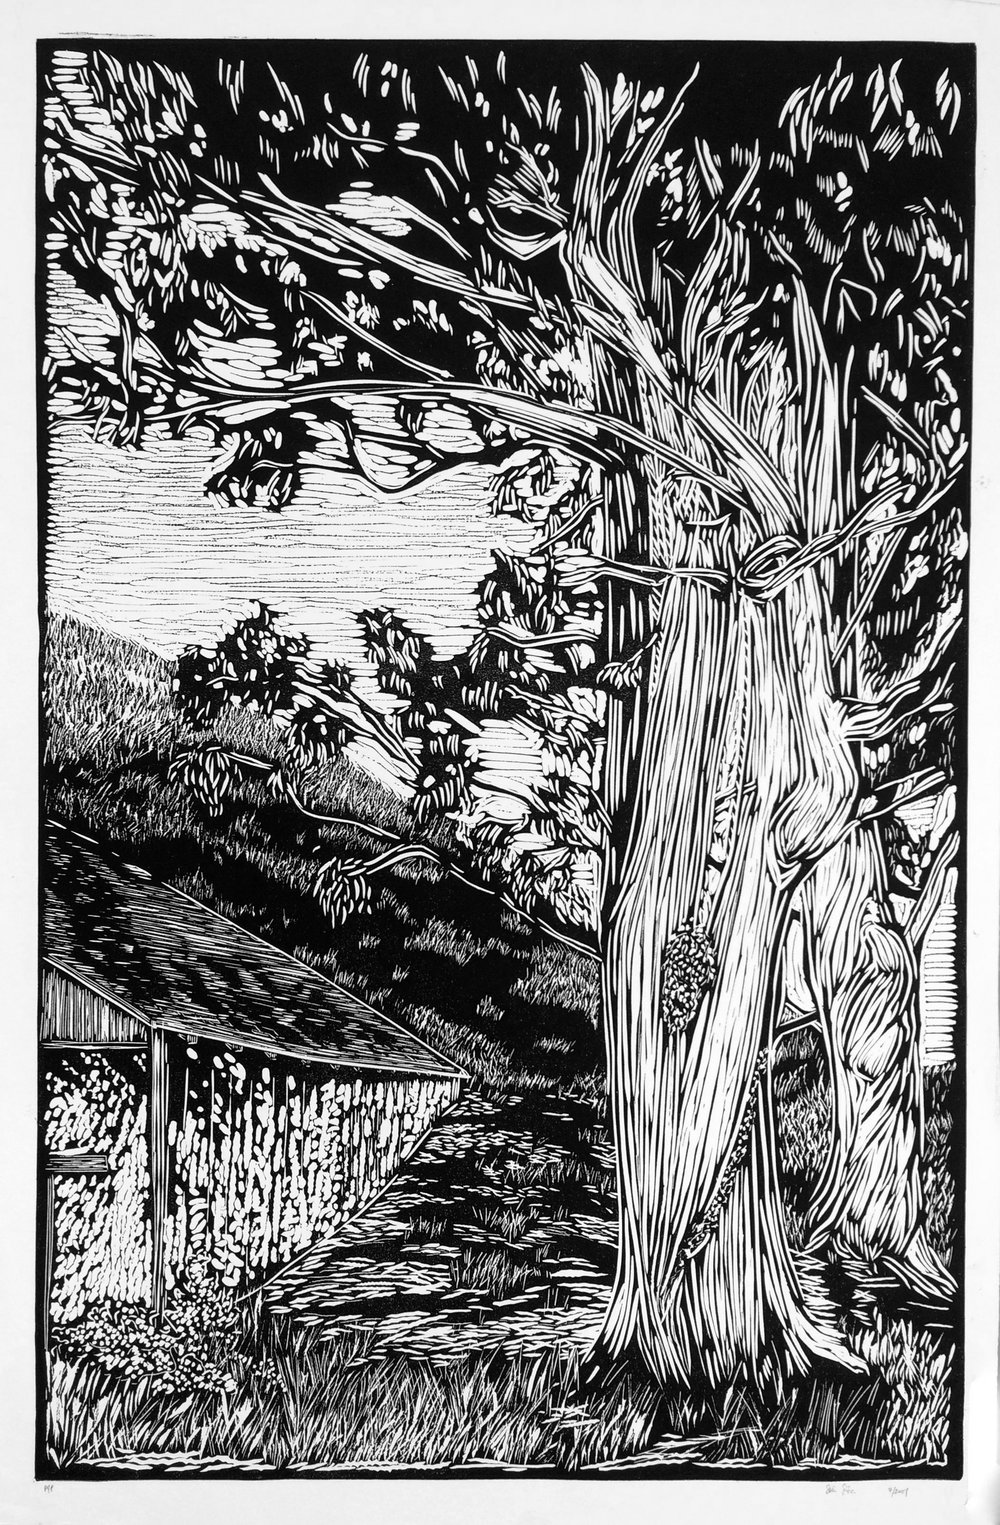 QUESERA CREEK   ARTIST: Sirima Sataman MEDIUM: Linocut – Ink on 100% cotton paper DIMENSIONS: 36 in x 48 in | 91,44 cm x 121,92 cm EDITION: 24 PRICE: $750 unframed | $1800 framed